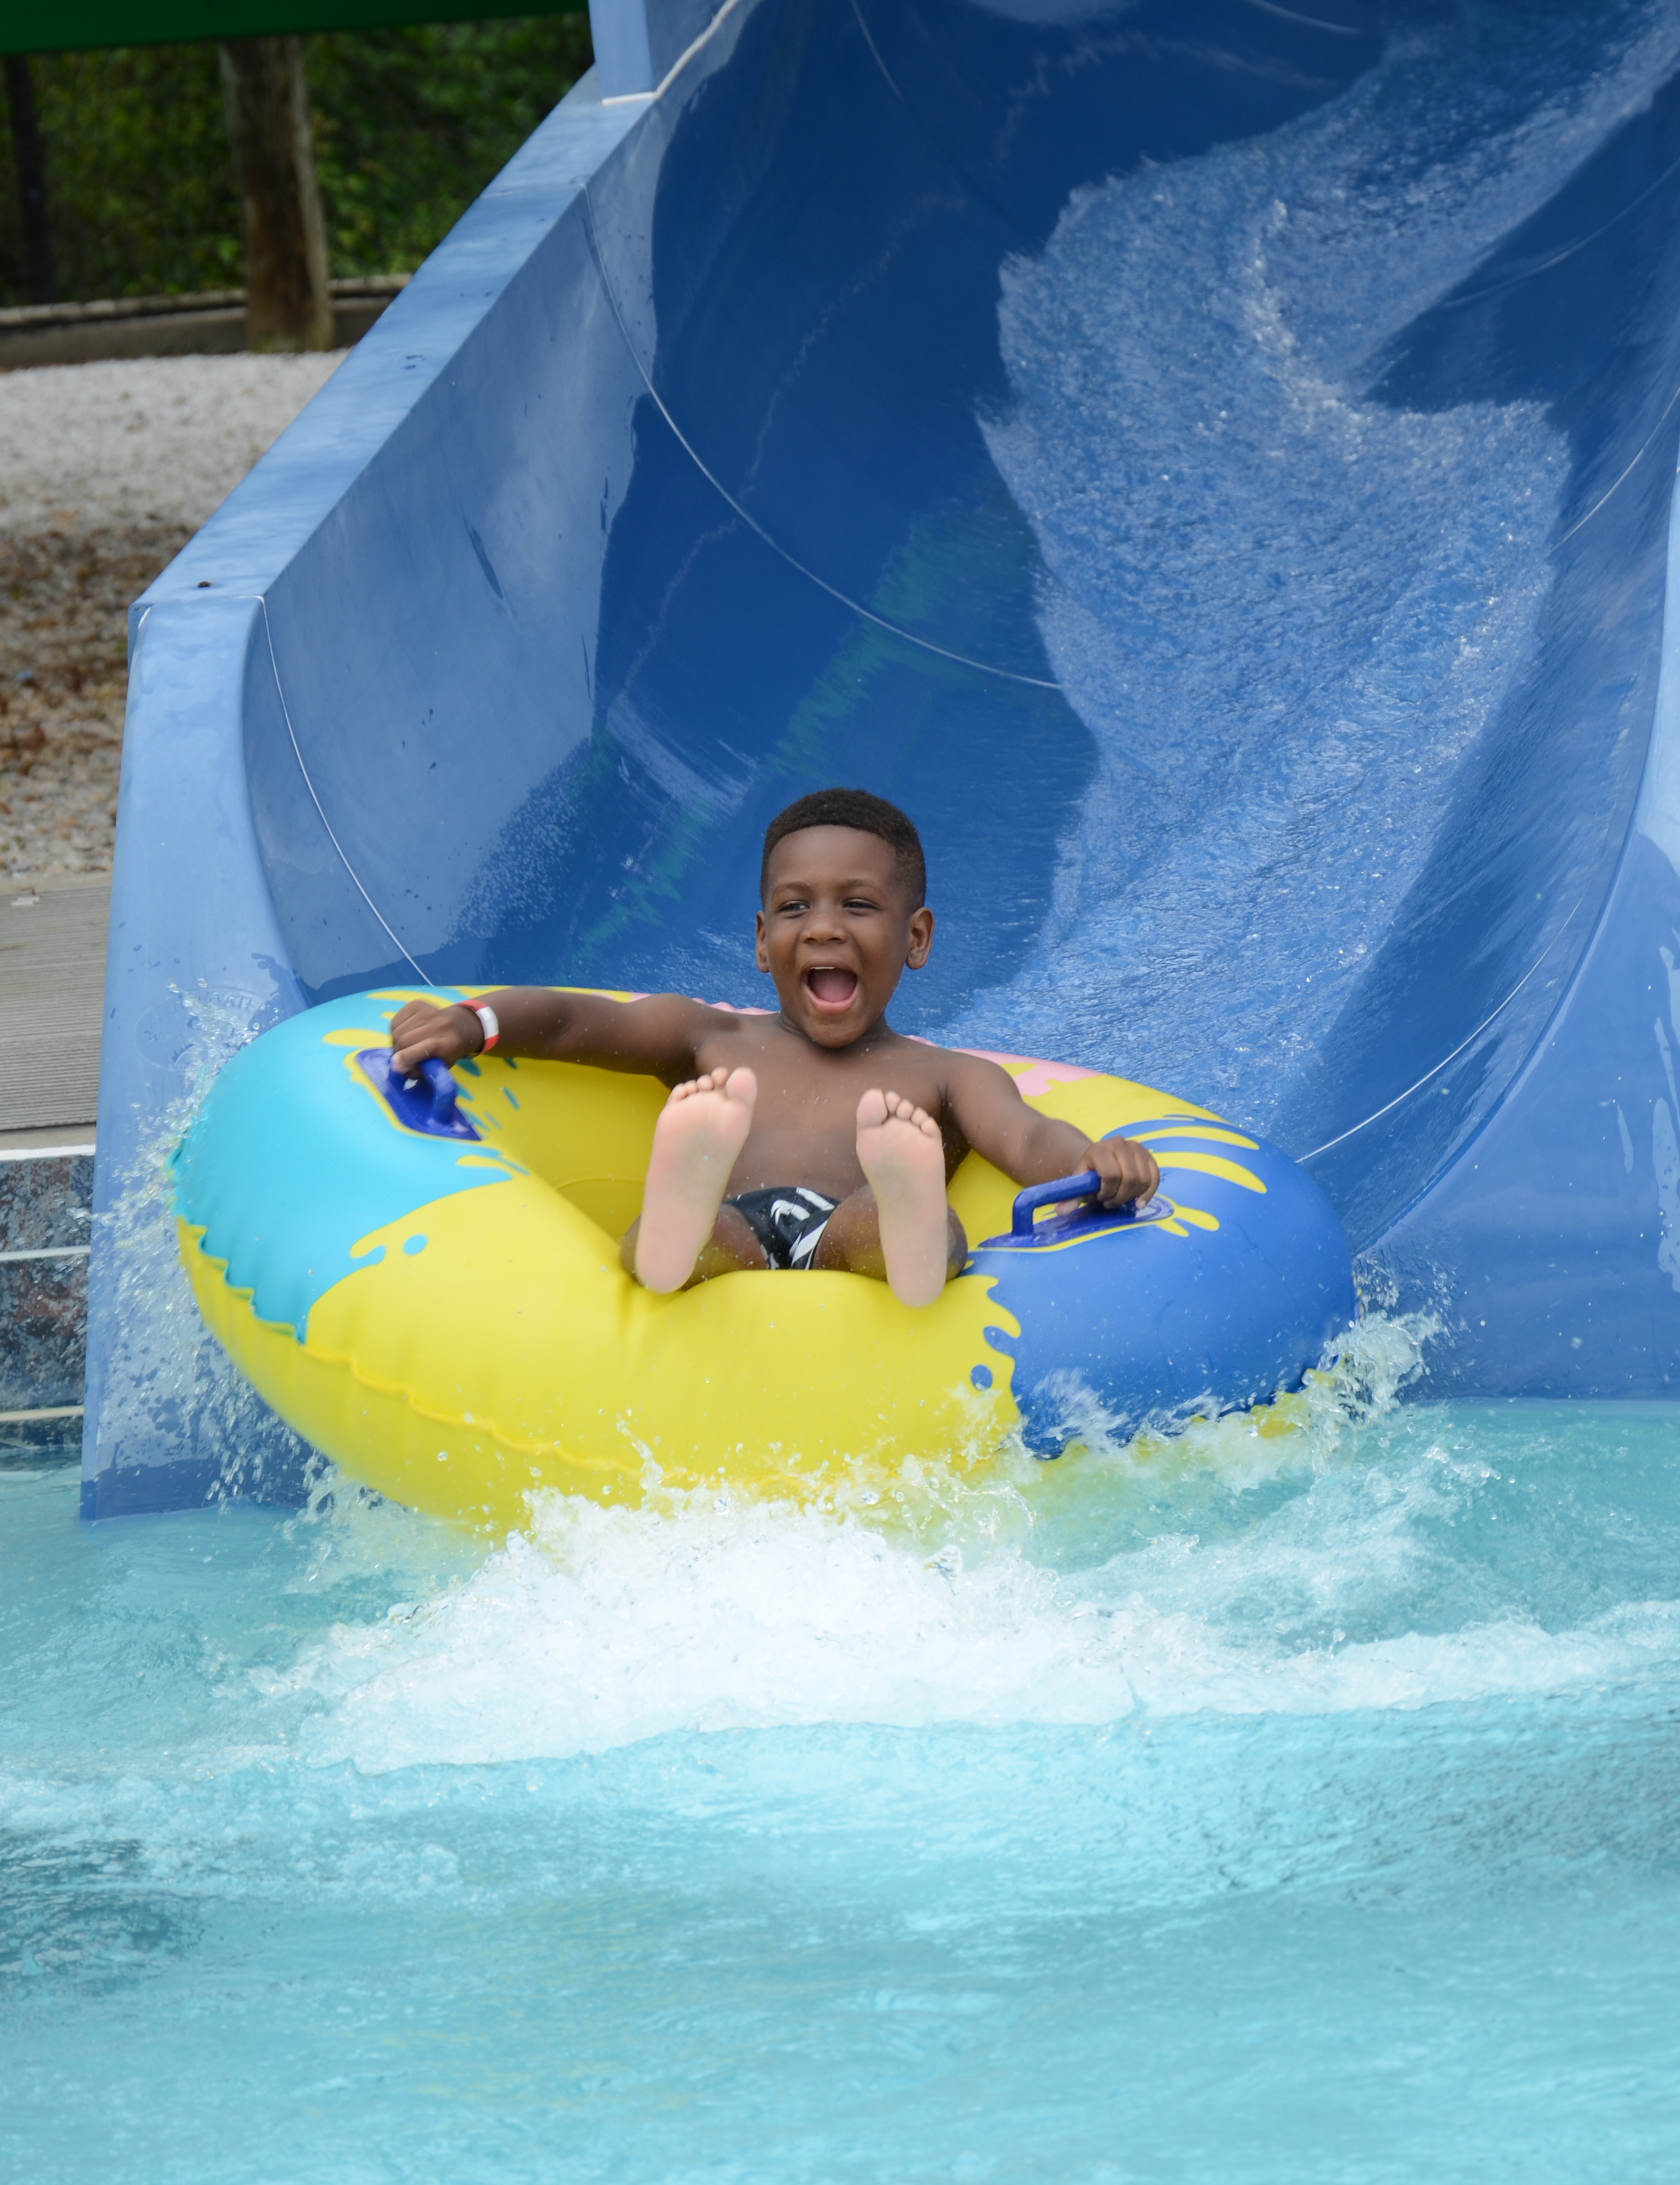 Ahhh! Campers enjoyed the water slide at the water park.